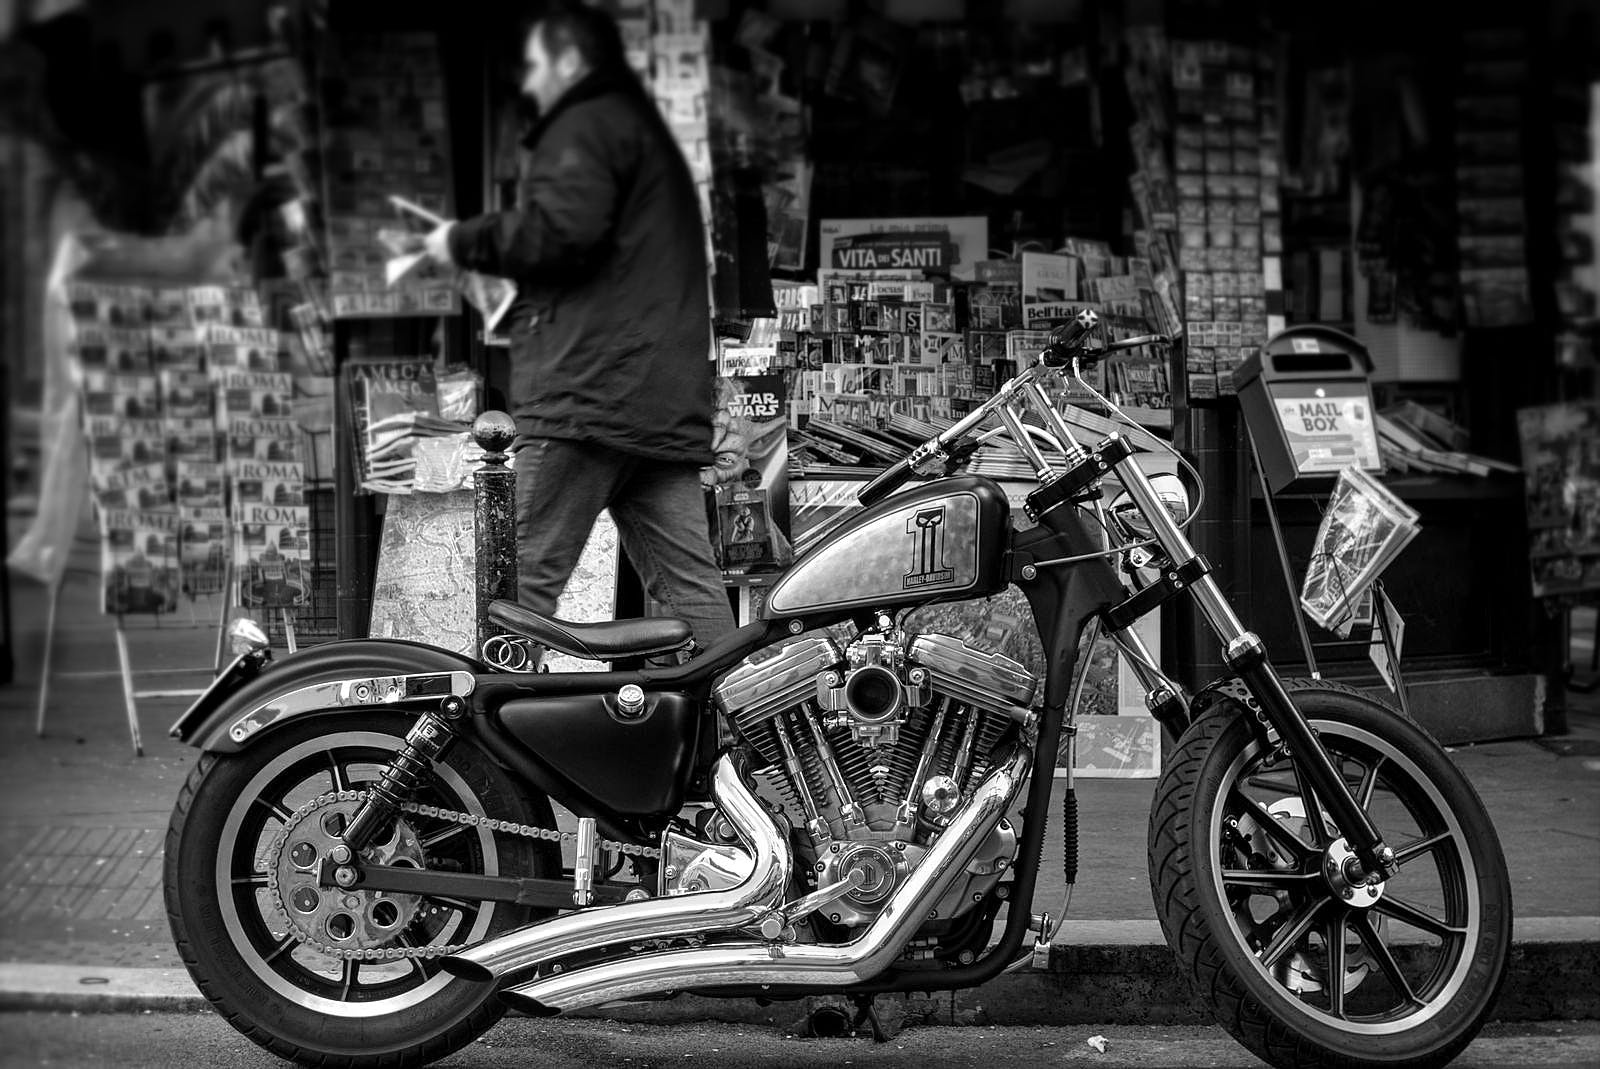 Grayscale Photo of a Cruiser Motorcycle